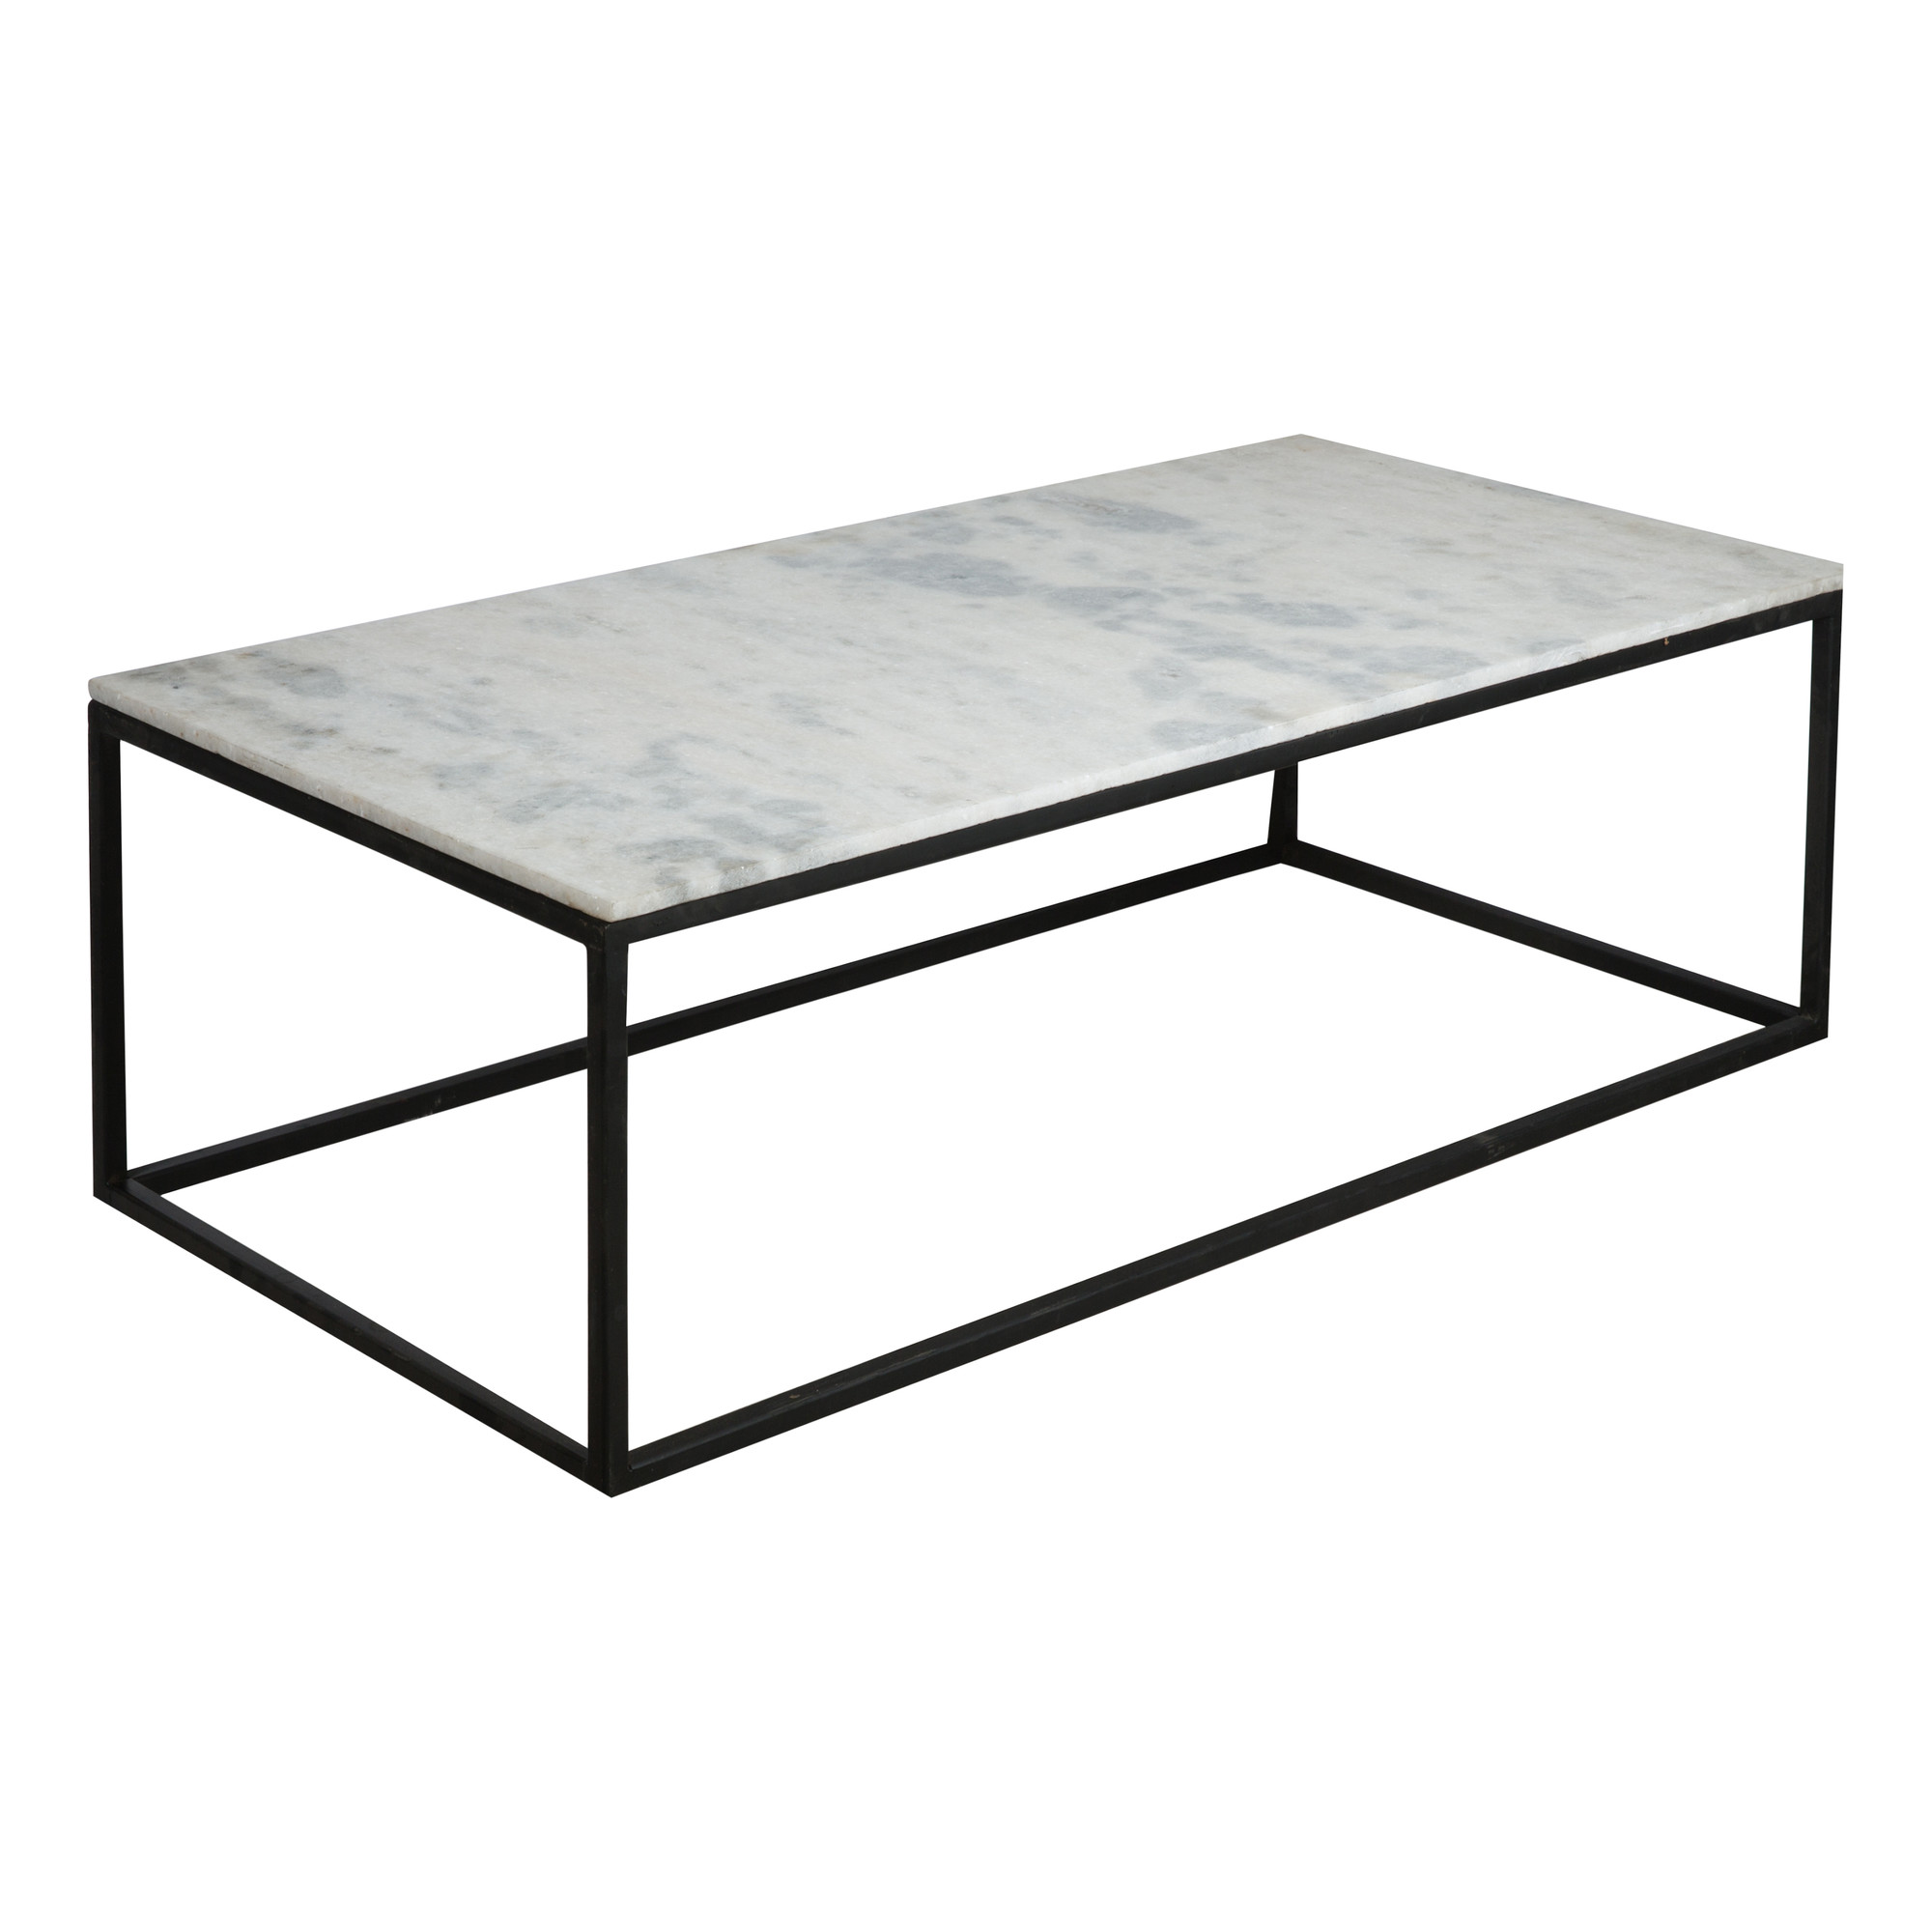 Natural Stone Coffee Table with Black Base